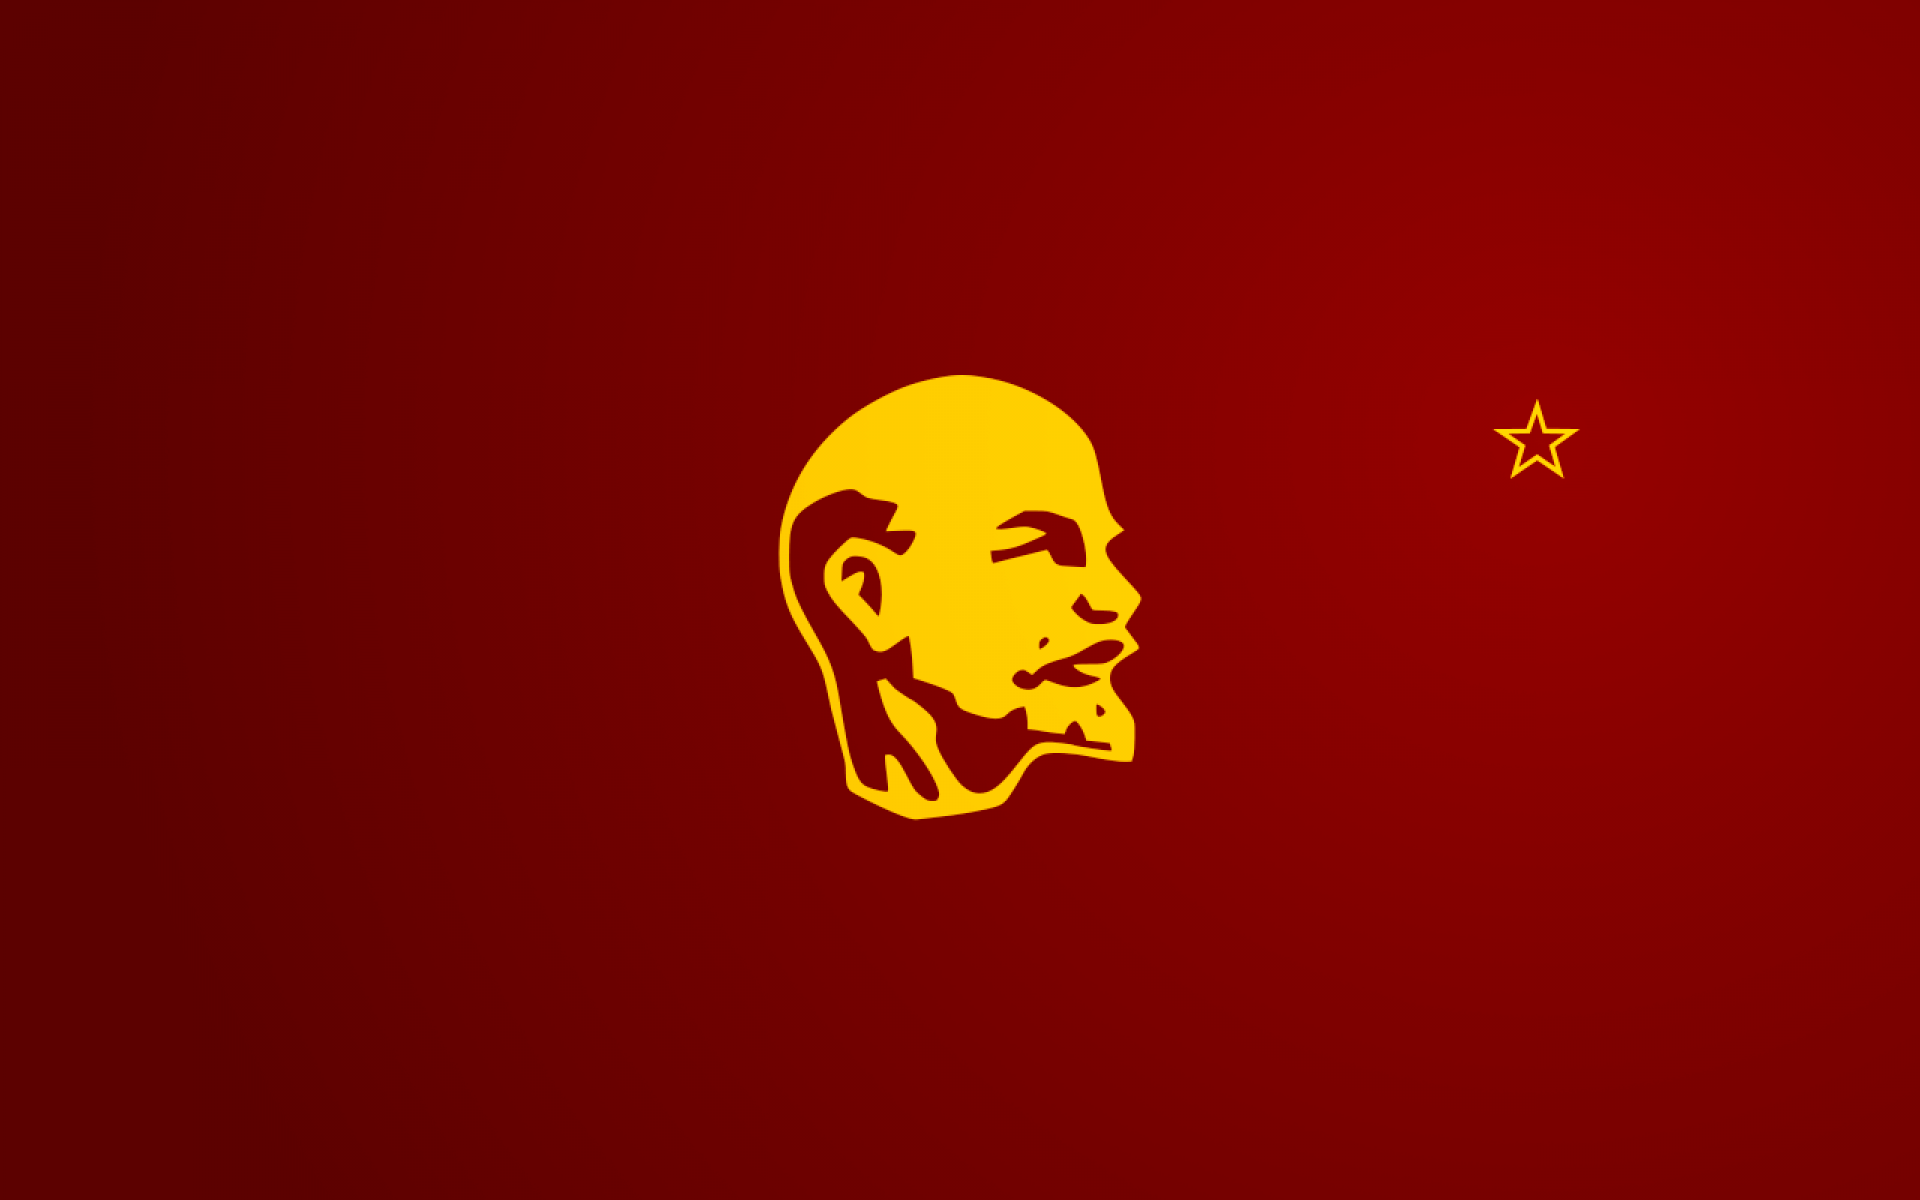 Cool HD Wallpapers Collection of Lenin - 1920x1200 px, 06.27.14